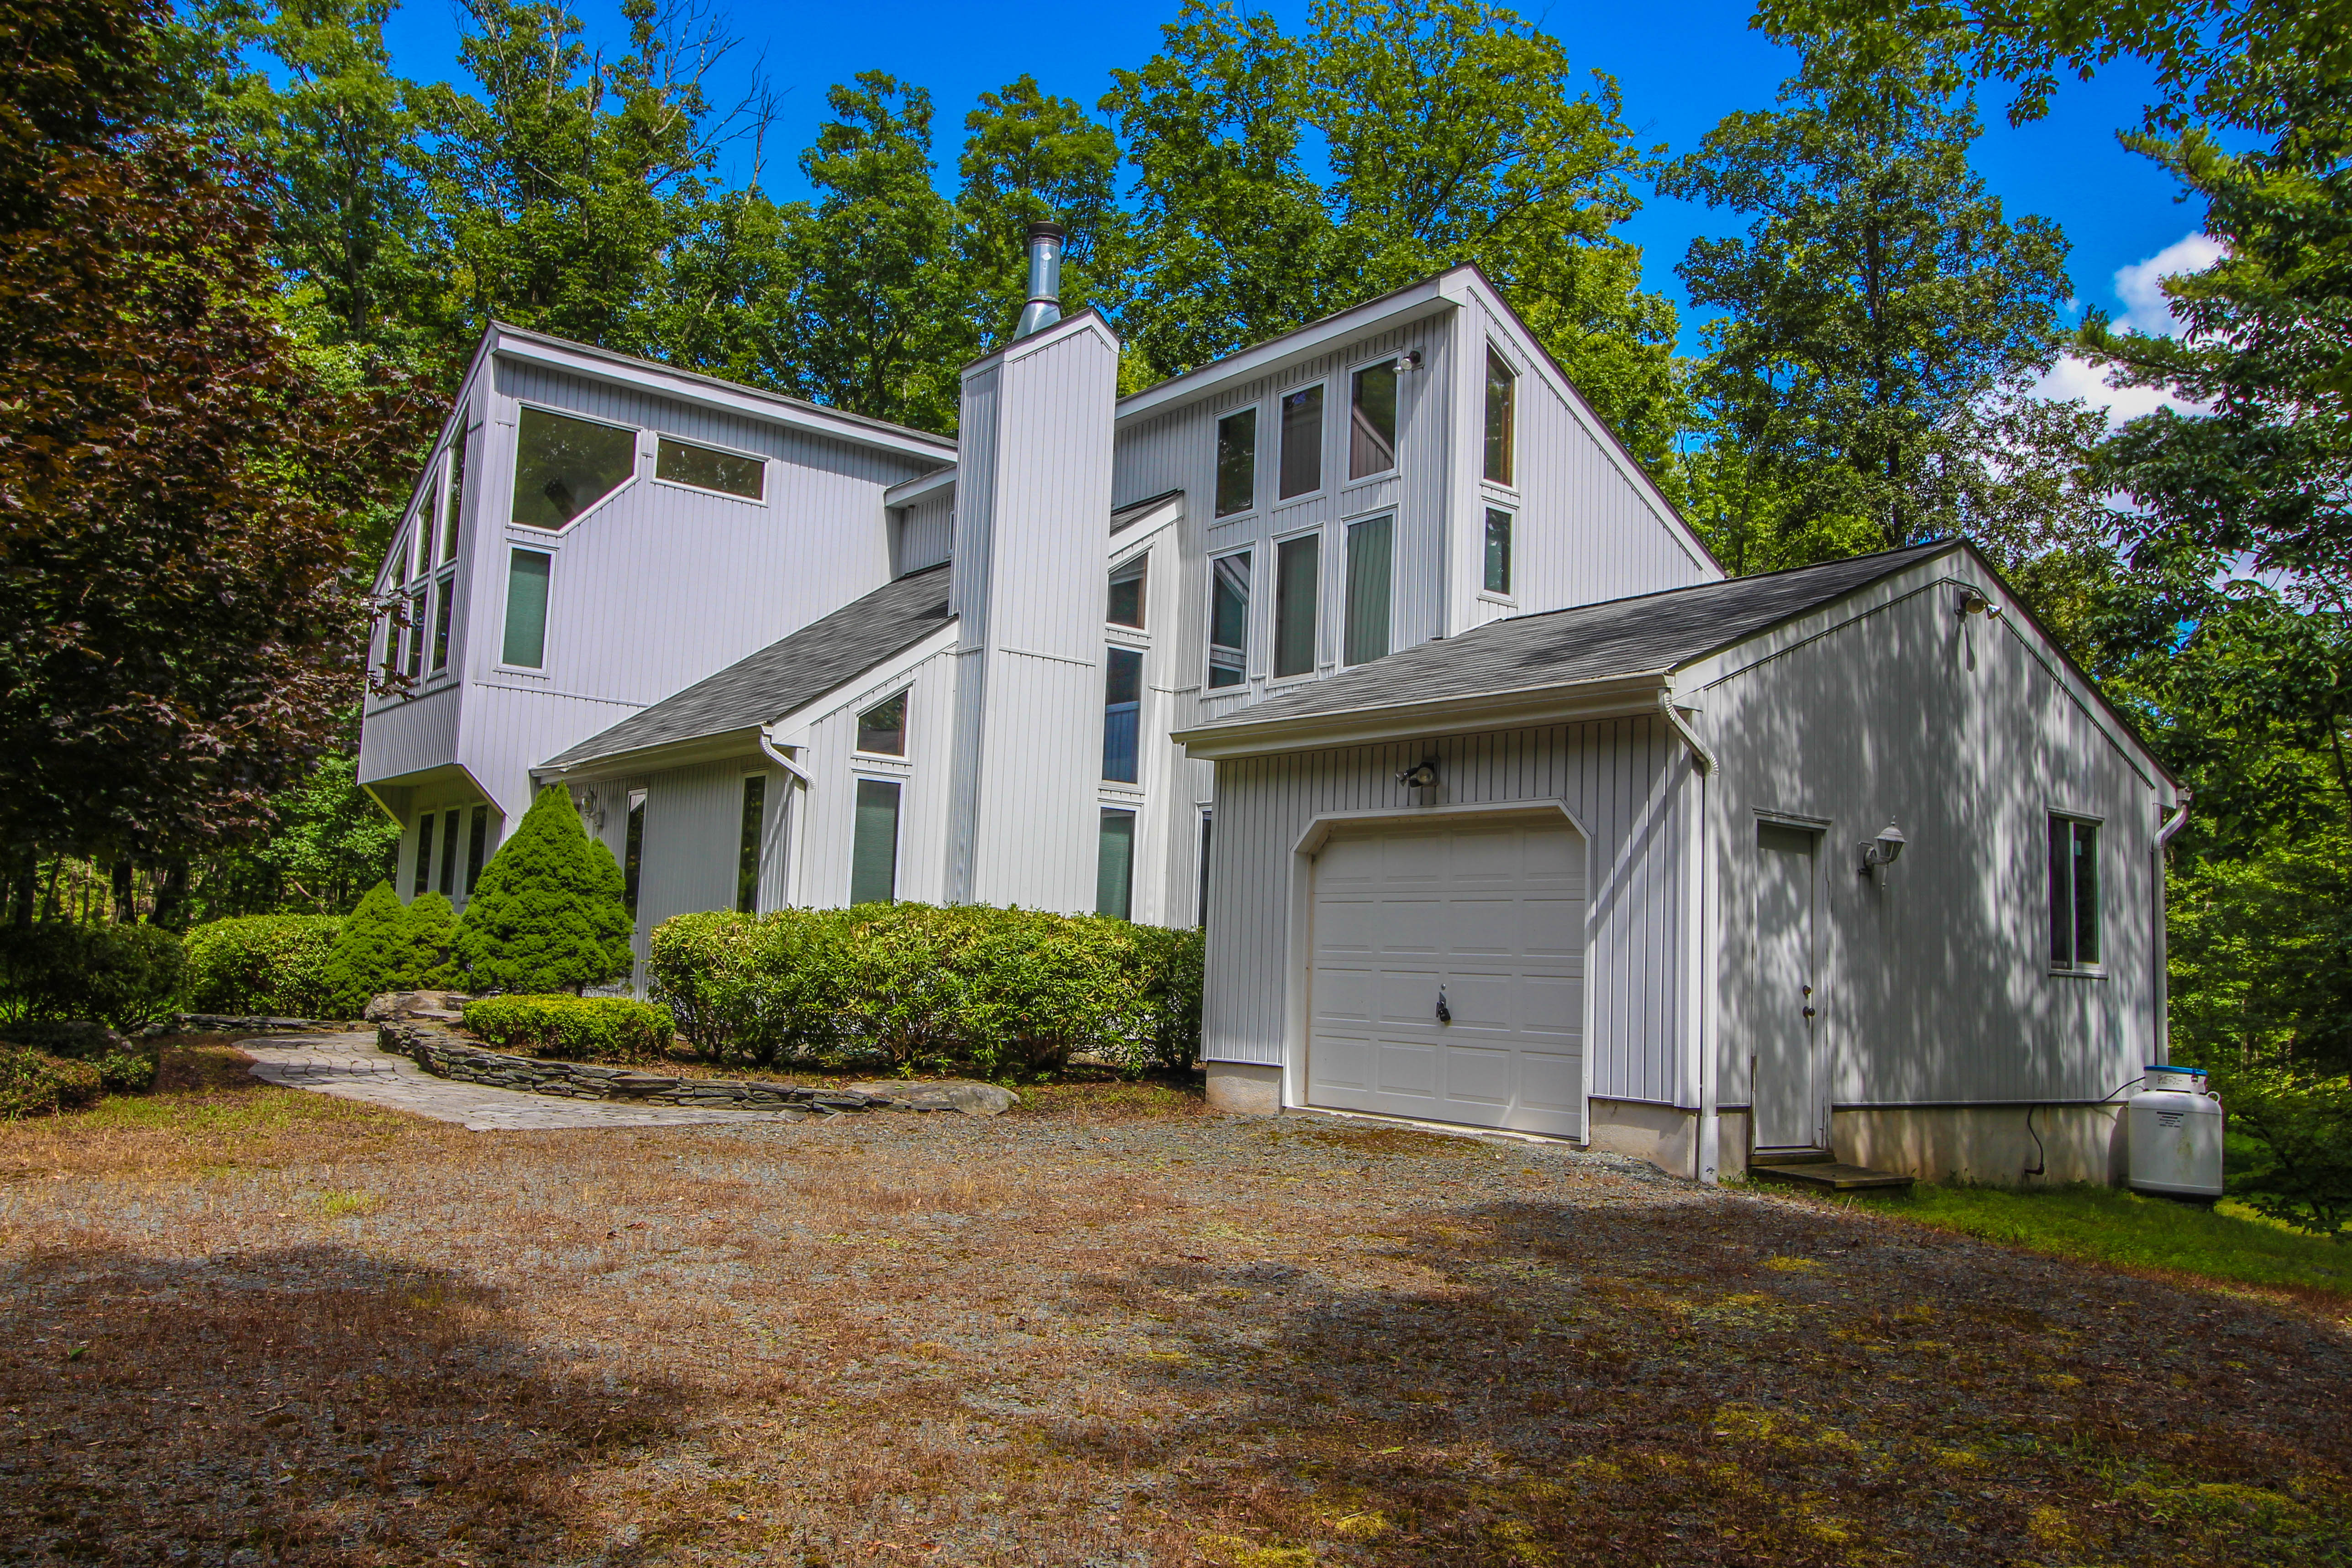 Canadensis Home For Sale Just Listed!